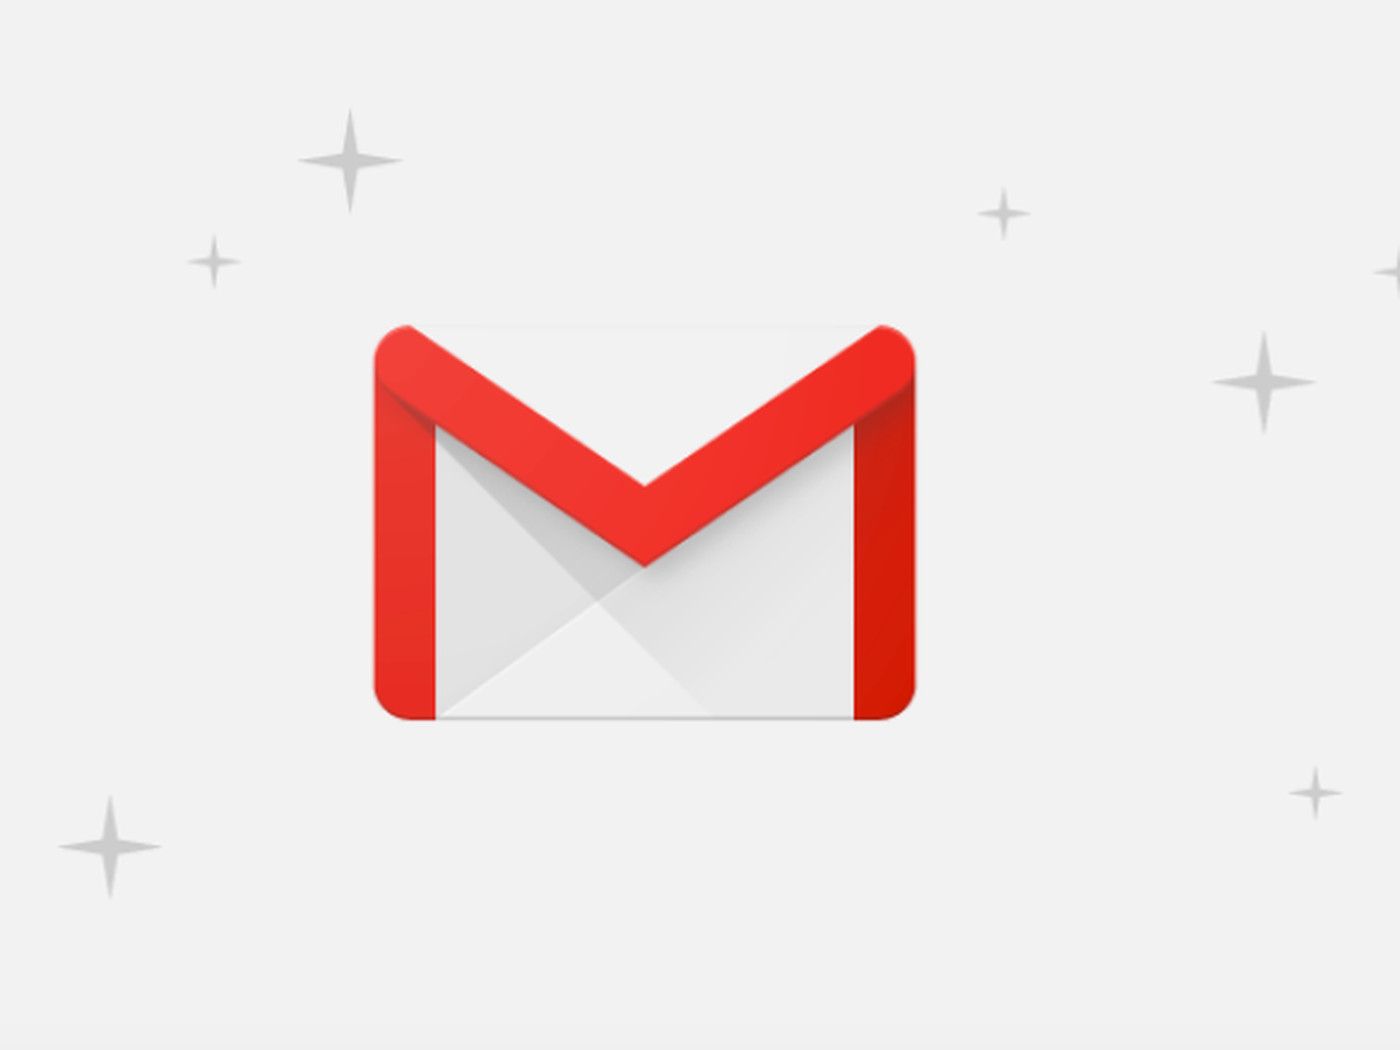 Упрощаем почту Google. Simplify Gmail для Google Chrome